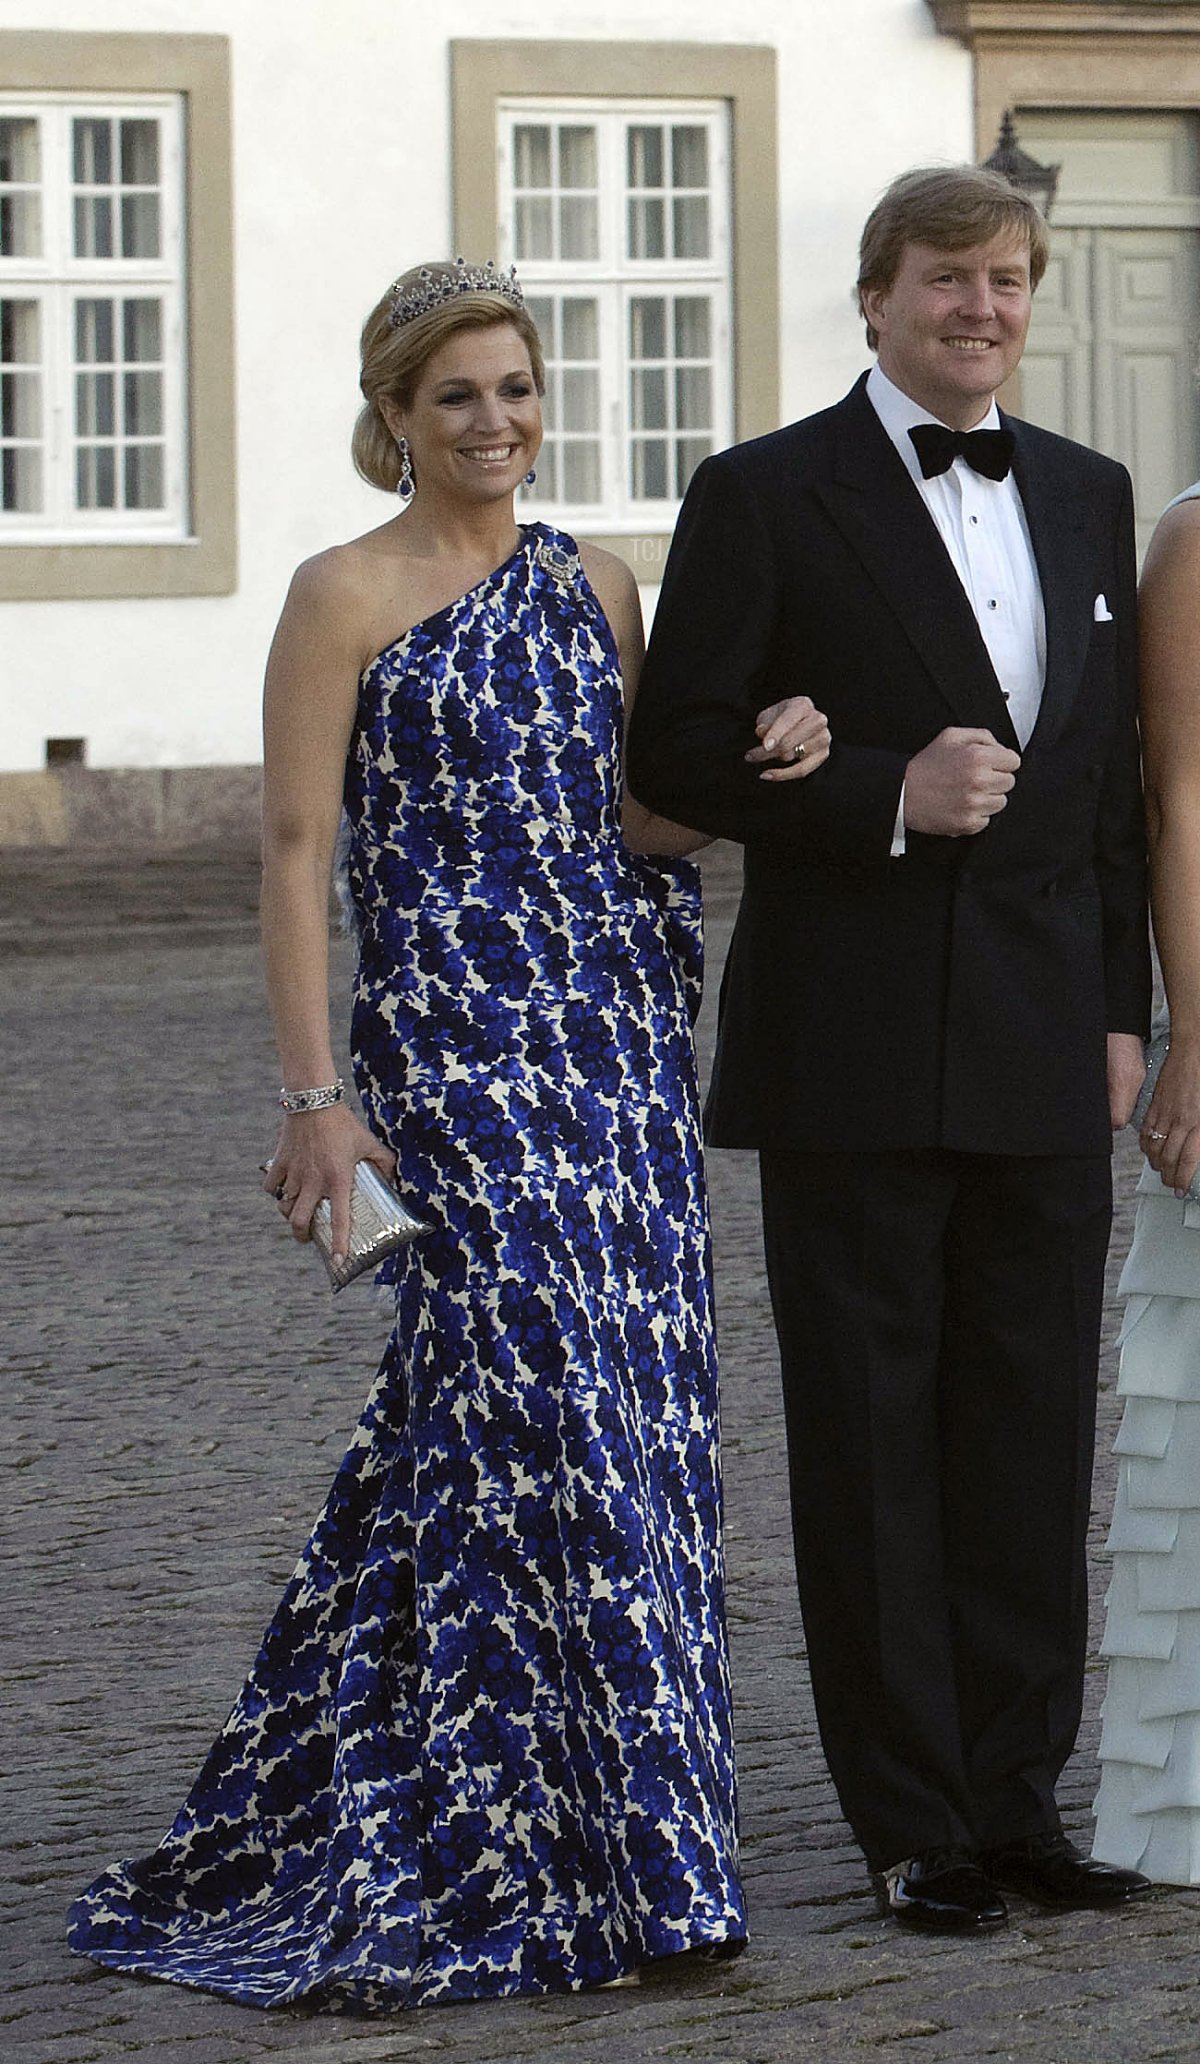 Prince Willem-Alexander and Crown Princess Maxima of the Netherlands arrive at the gala dinner on the occasion of the celebration of the 70th birthday of Danish Queen Margrethe, Fredensborg Palace, Denmark, 16 April 2010